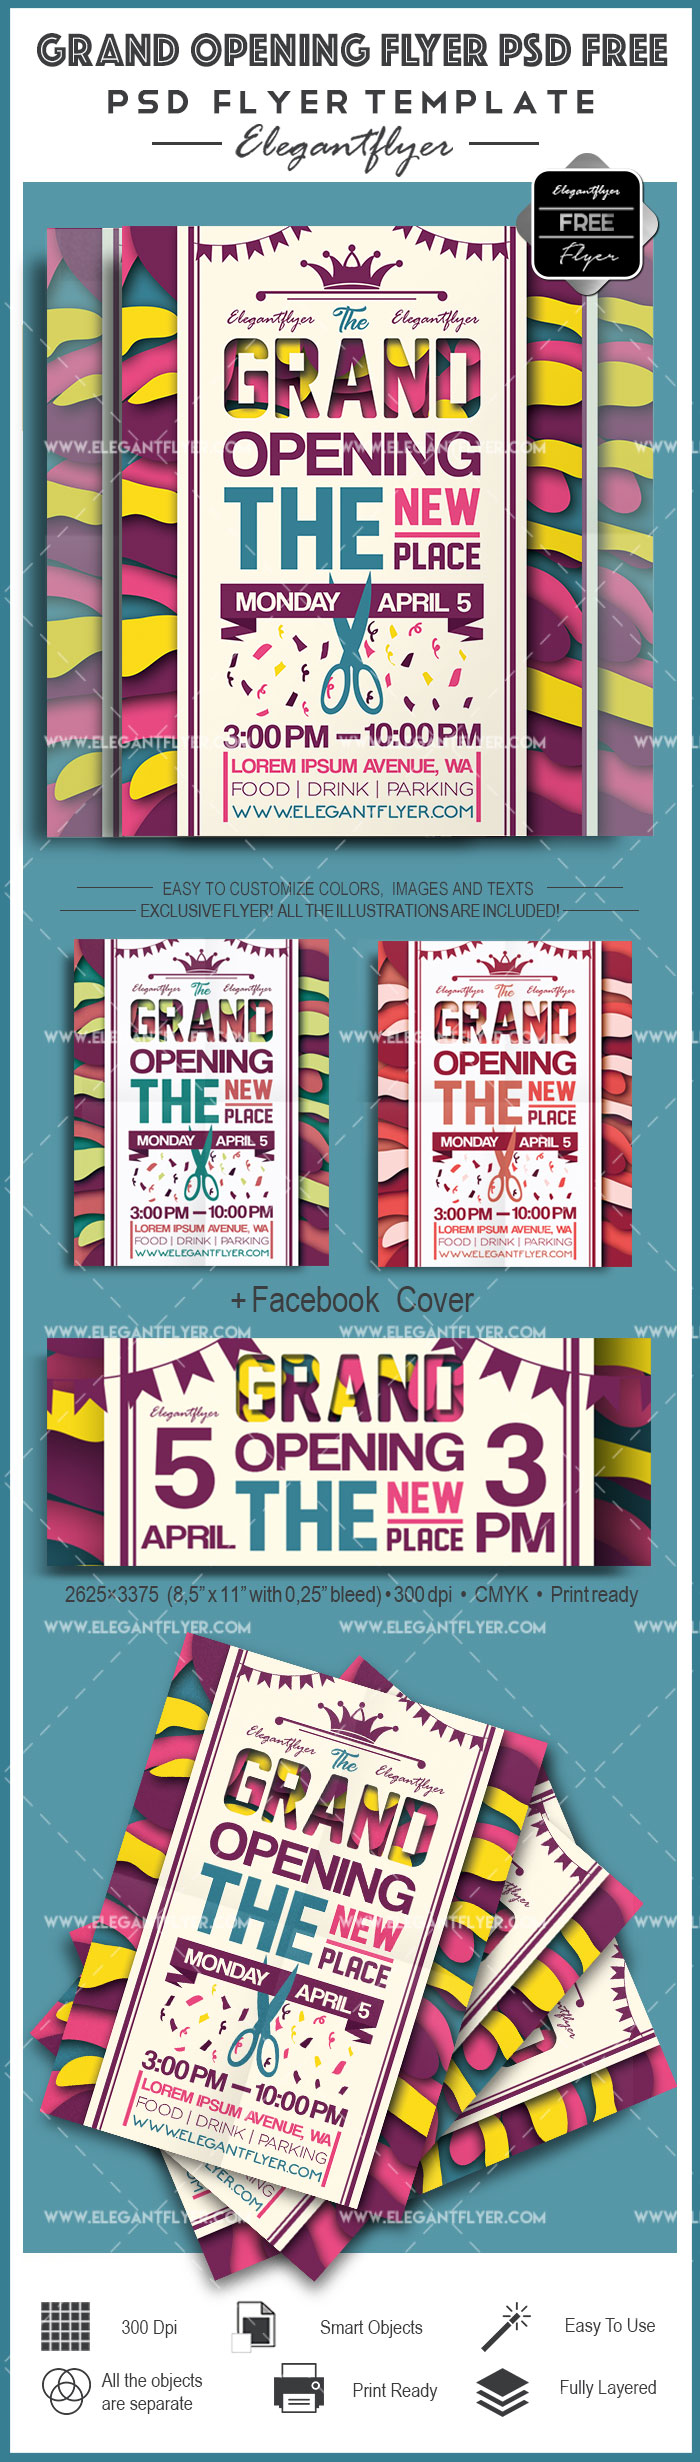 Grand Opening Flyer PSD Template